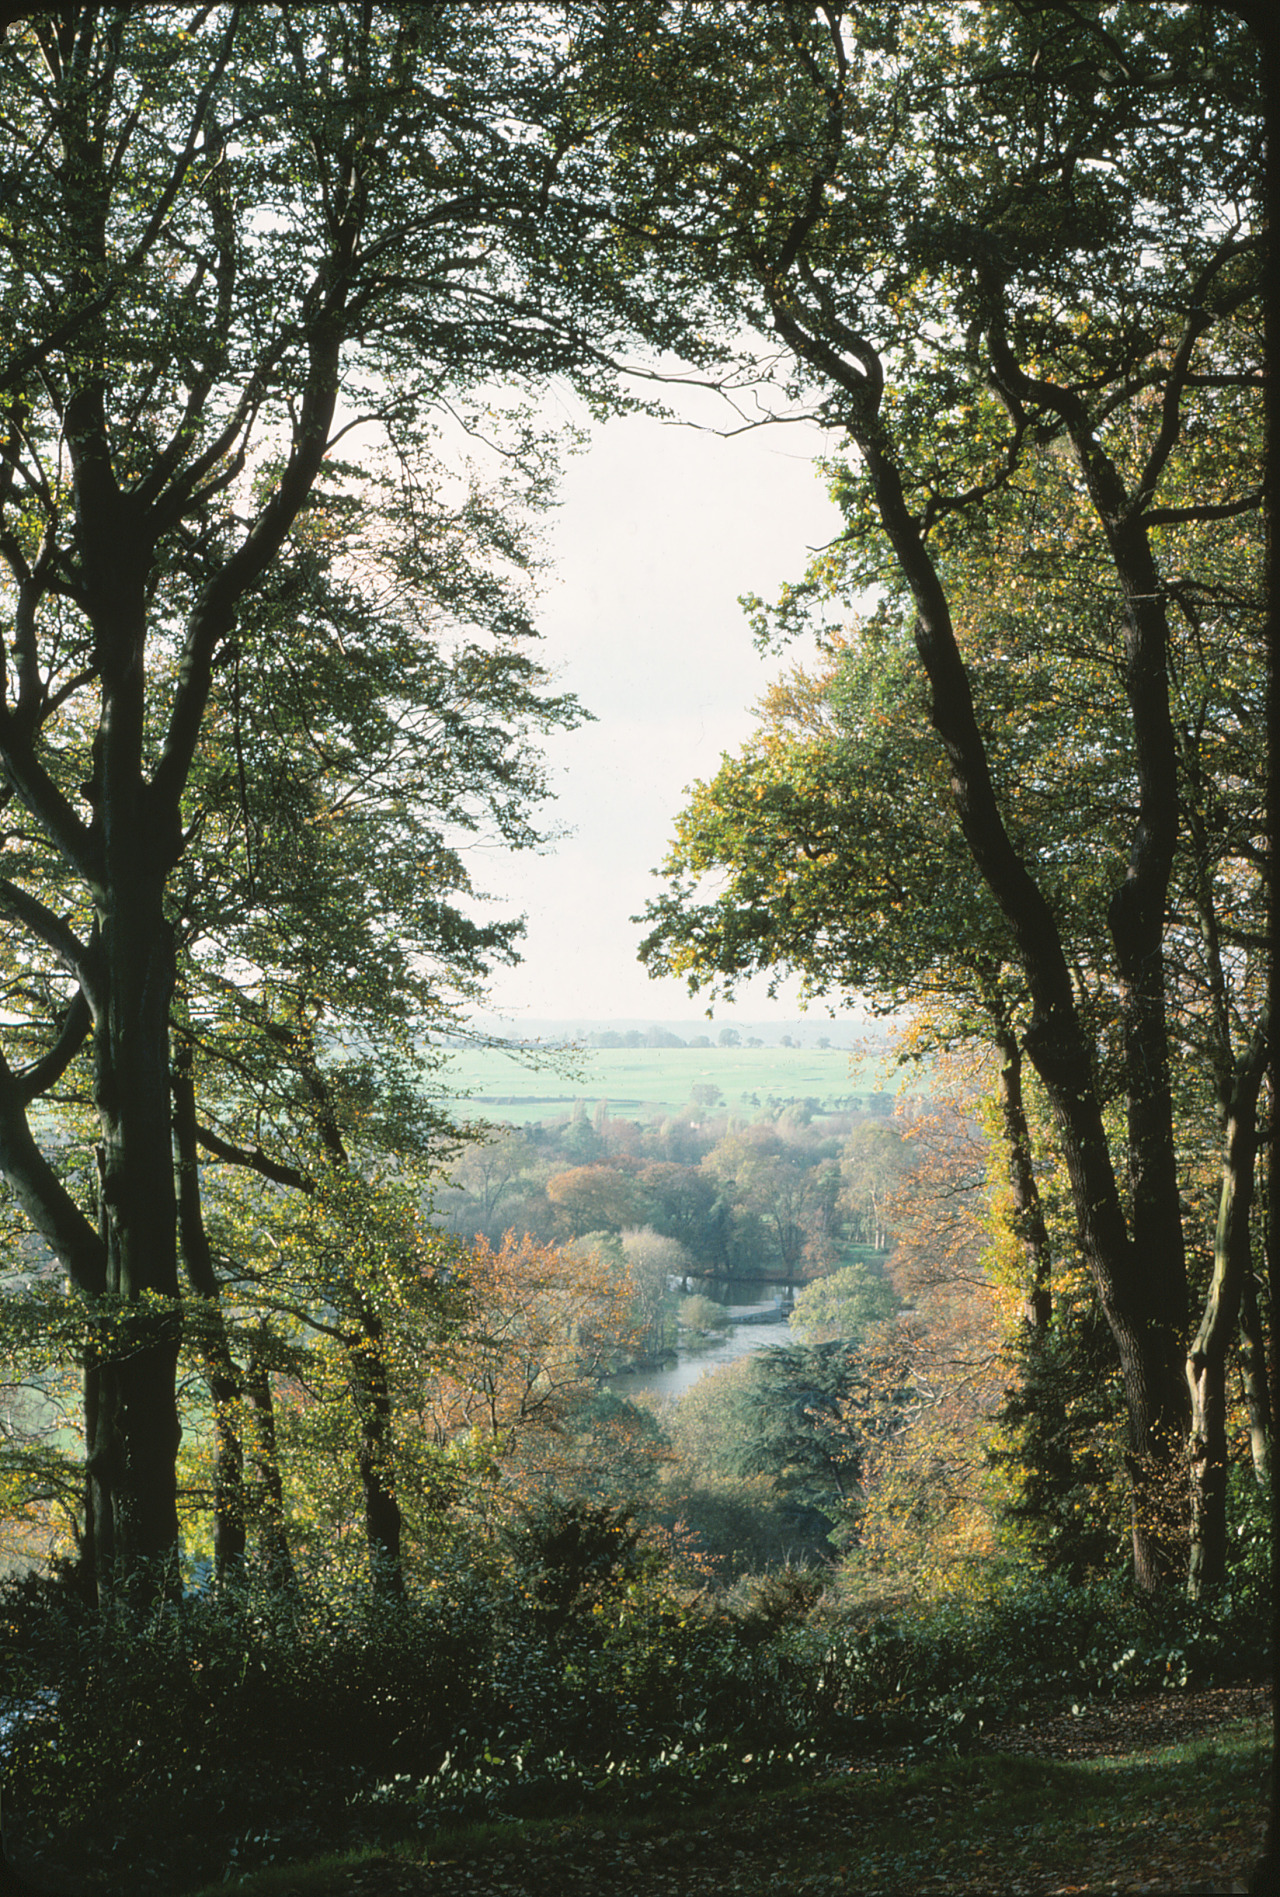 naturalphotos:  Thames Valley, England © 1976 (For more like this visit naturalphotos.tumblr.com)